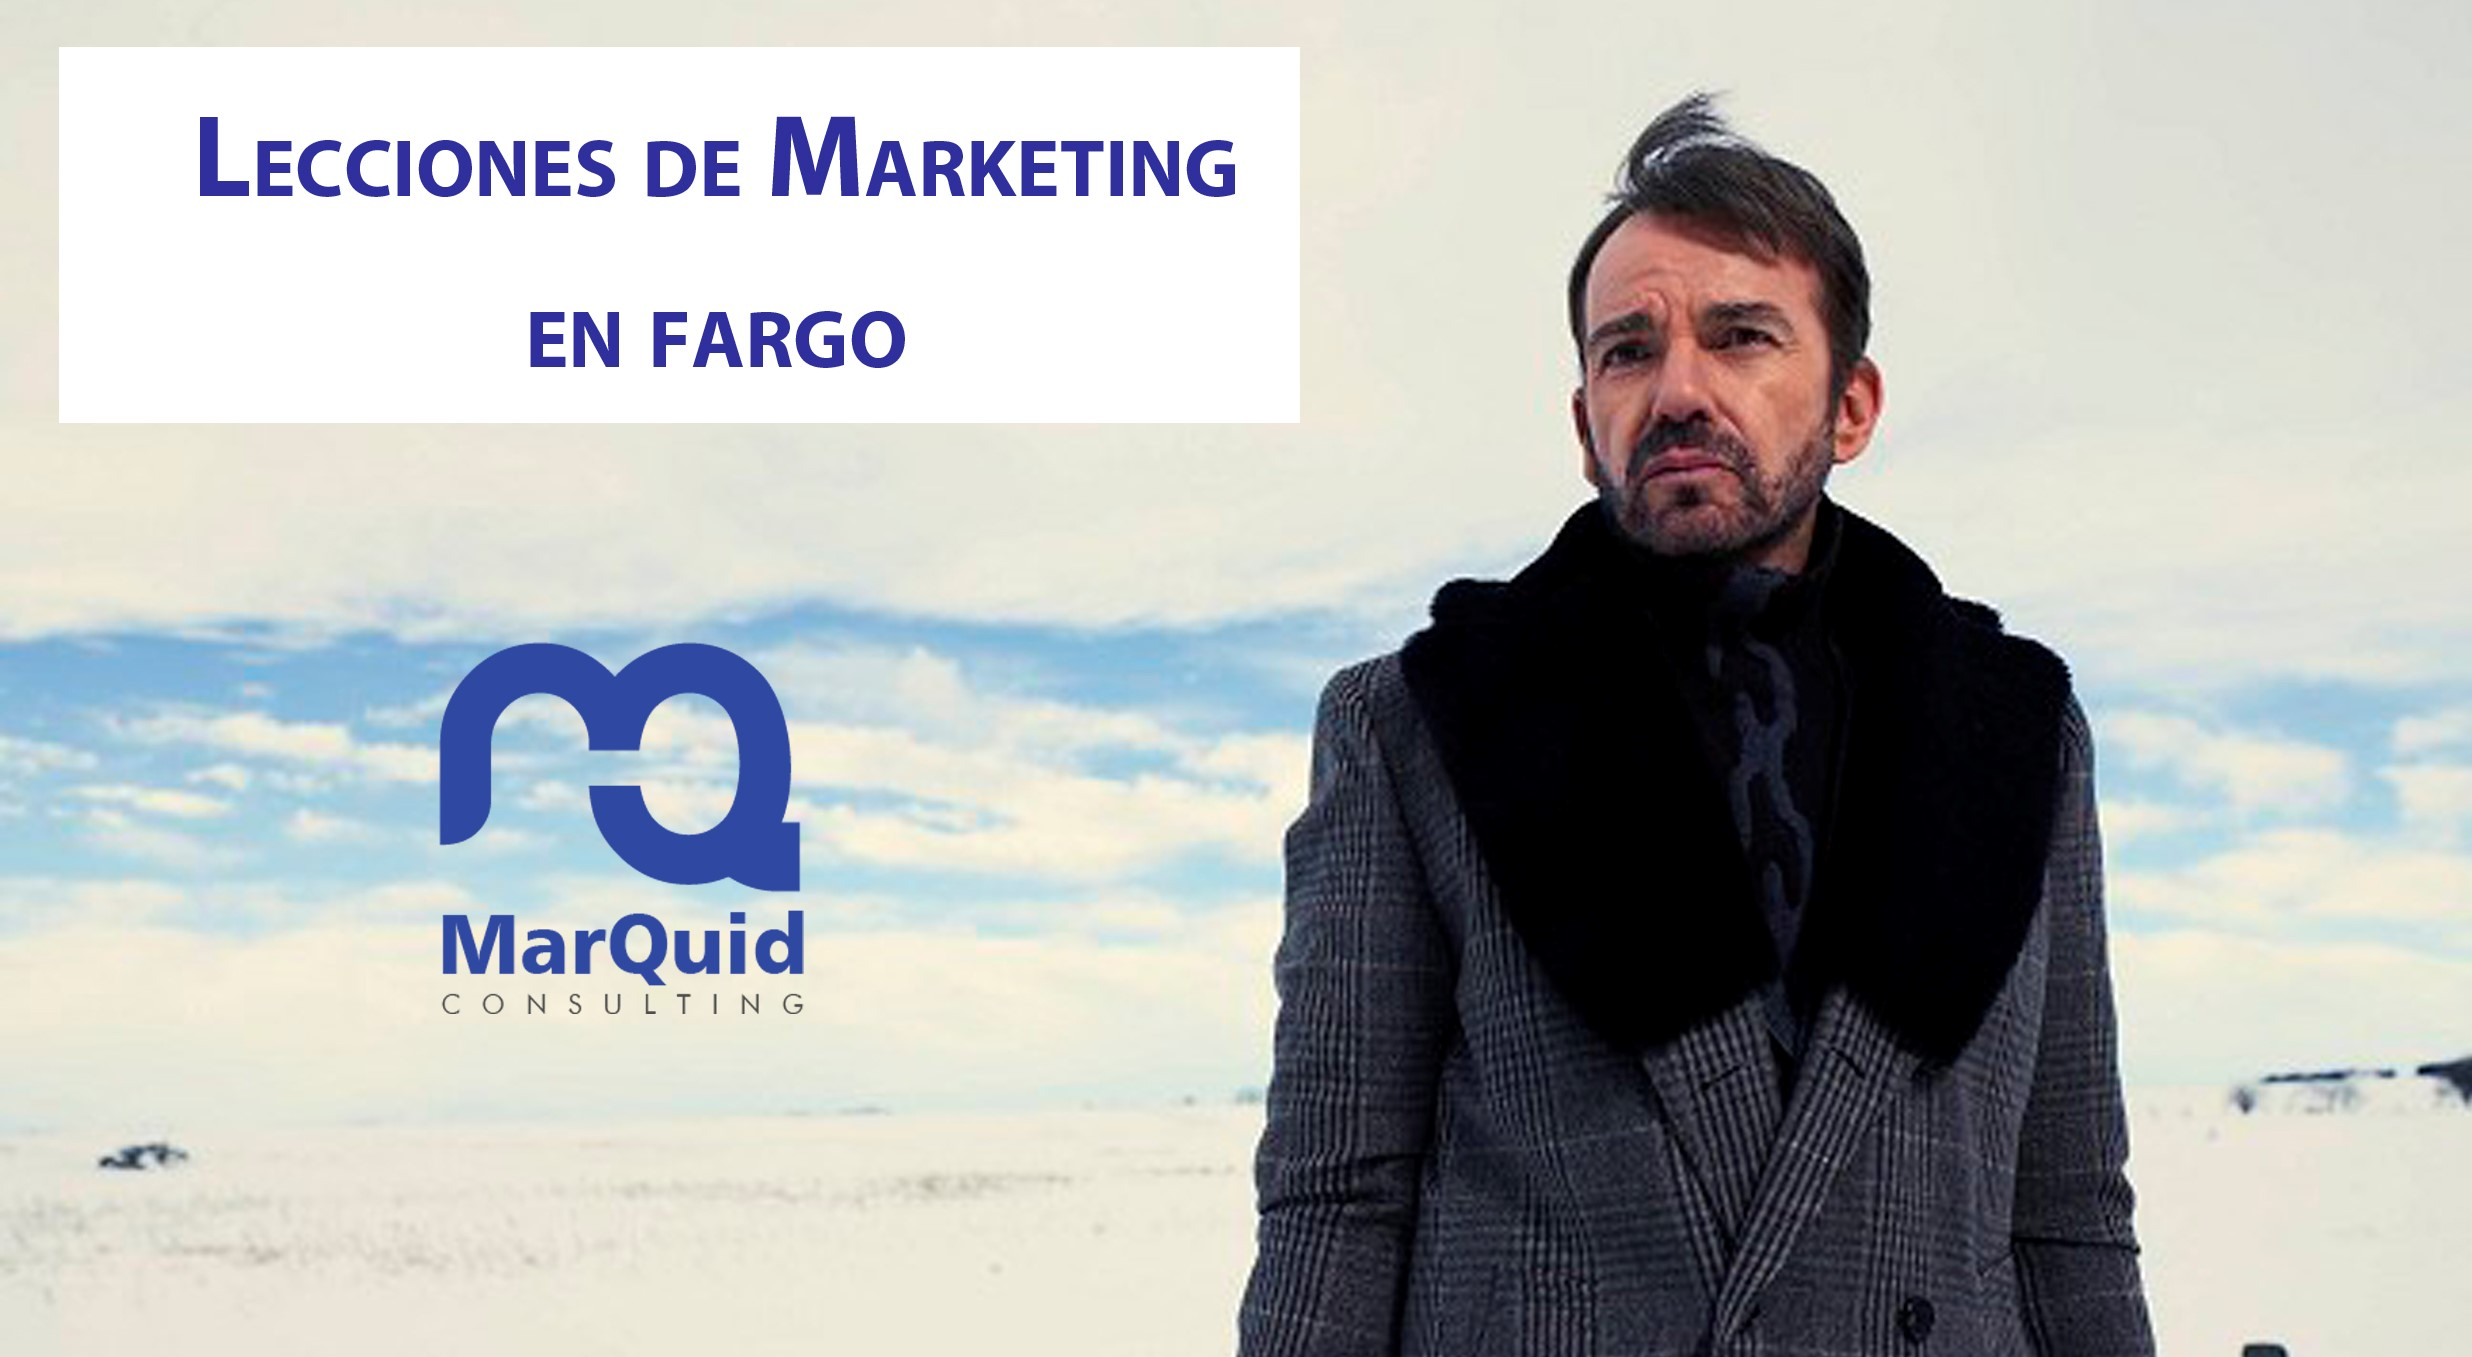 Lecciones de marketing en Fargo